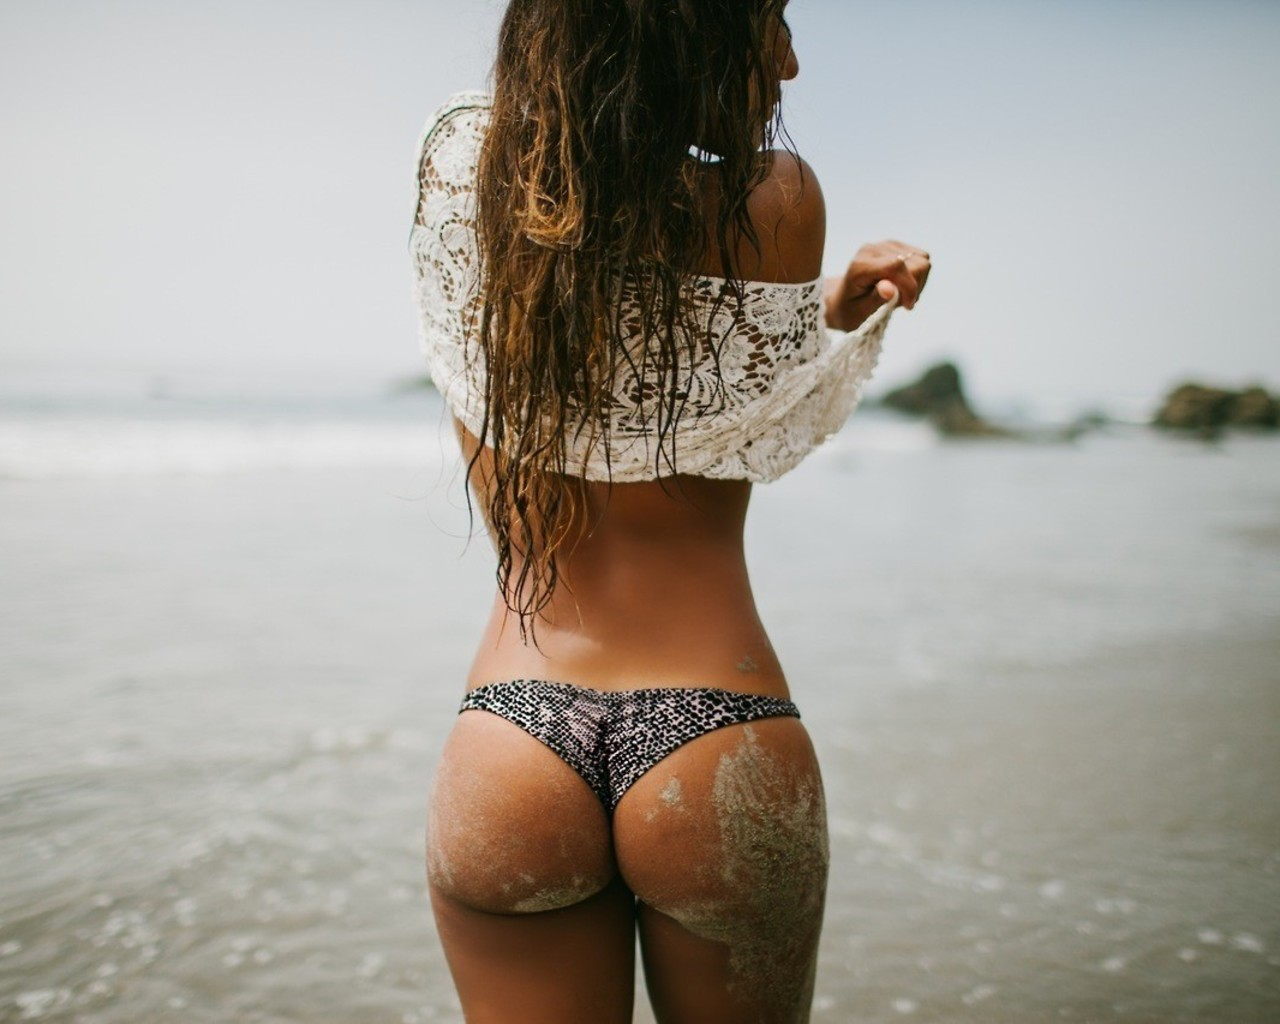 women-outdoors-model-sea-long-hair-sand-brunette